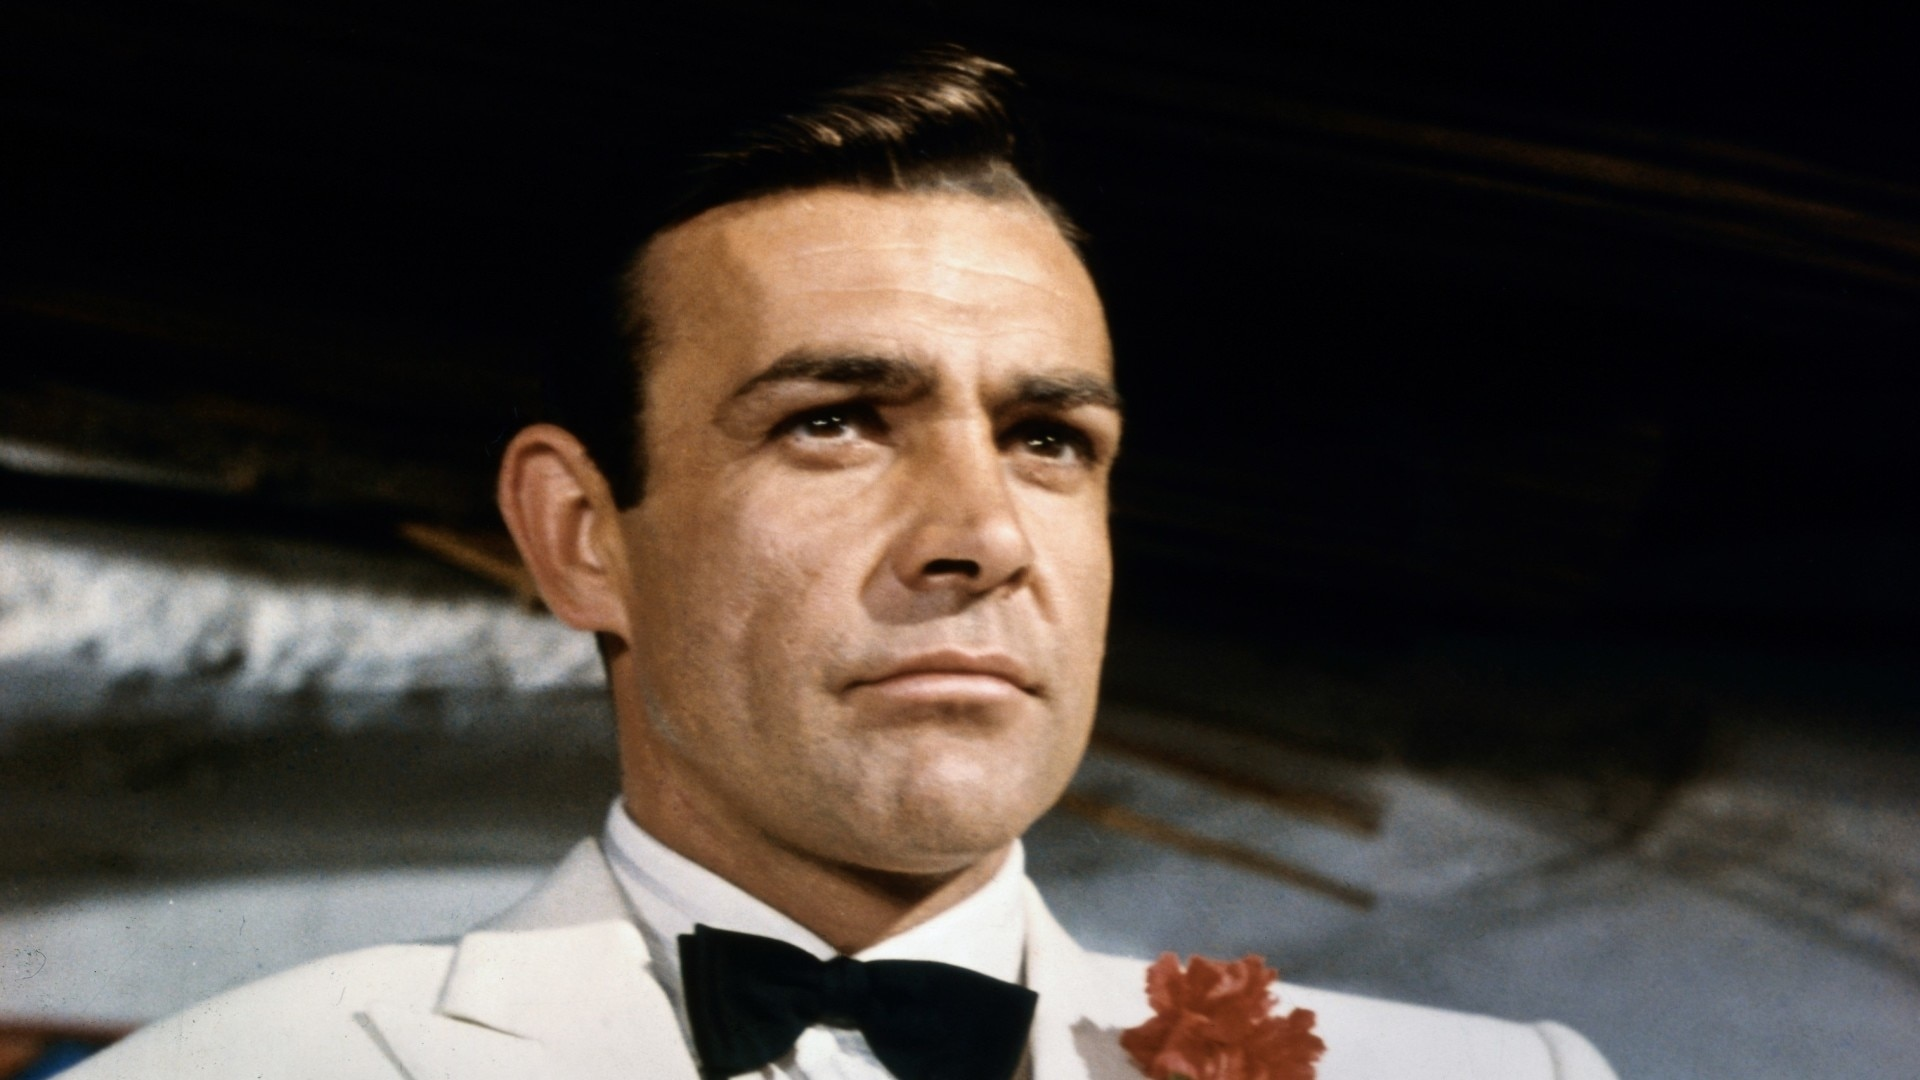 Discovering: Sean Connery